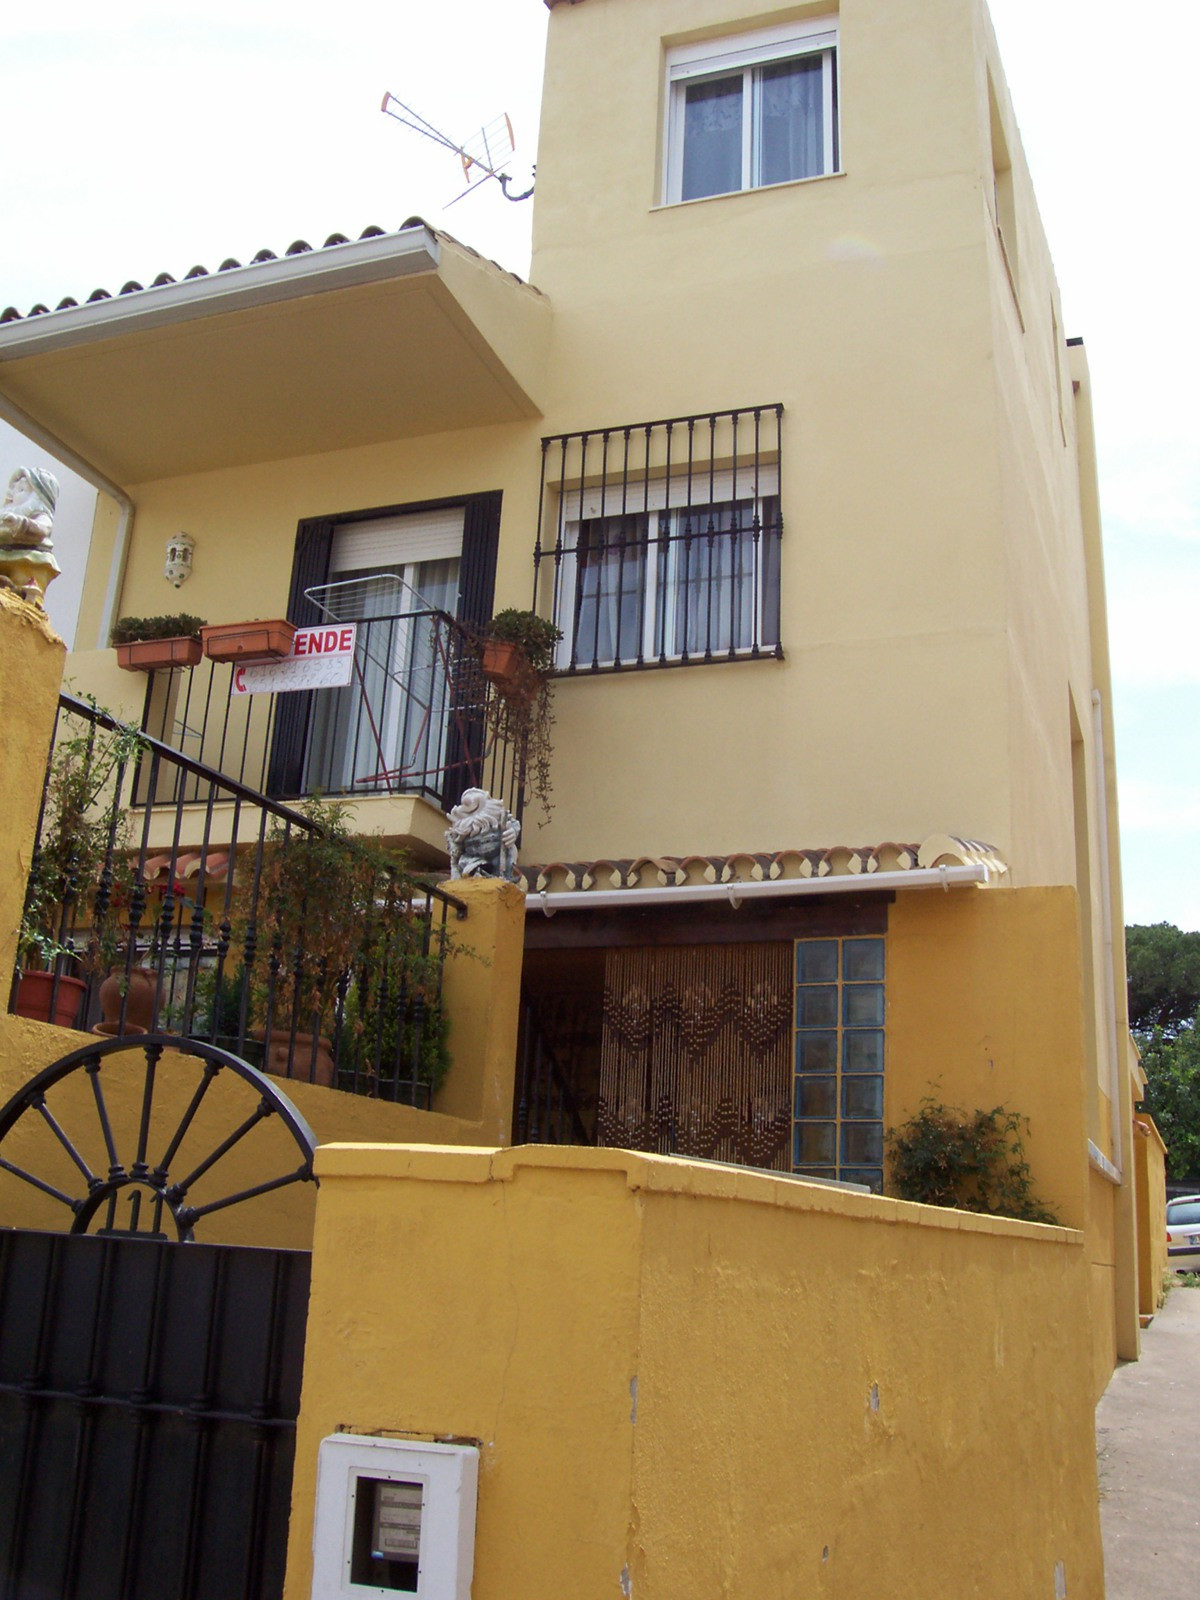 4 bed townhouse for sale marbella